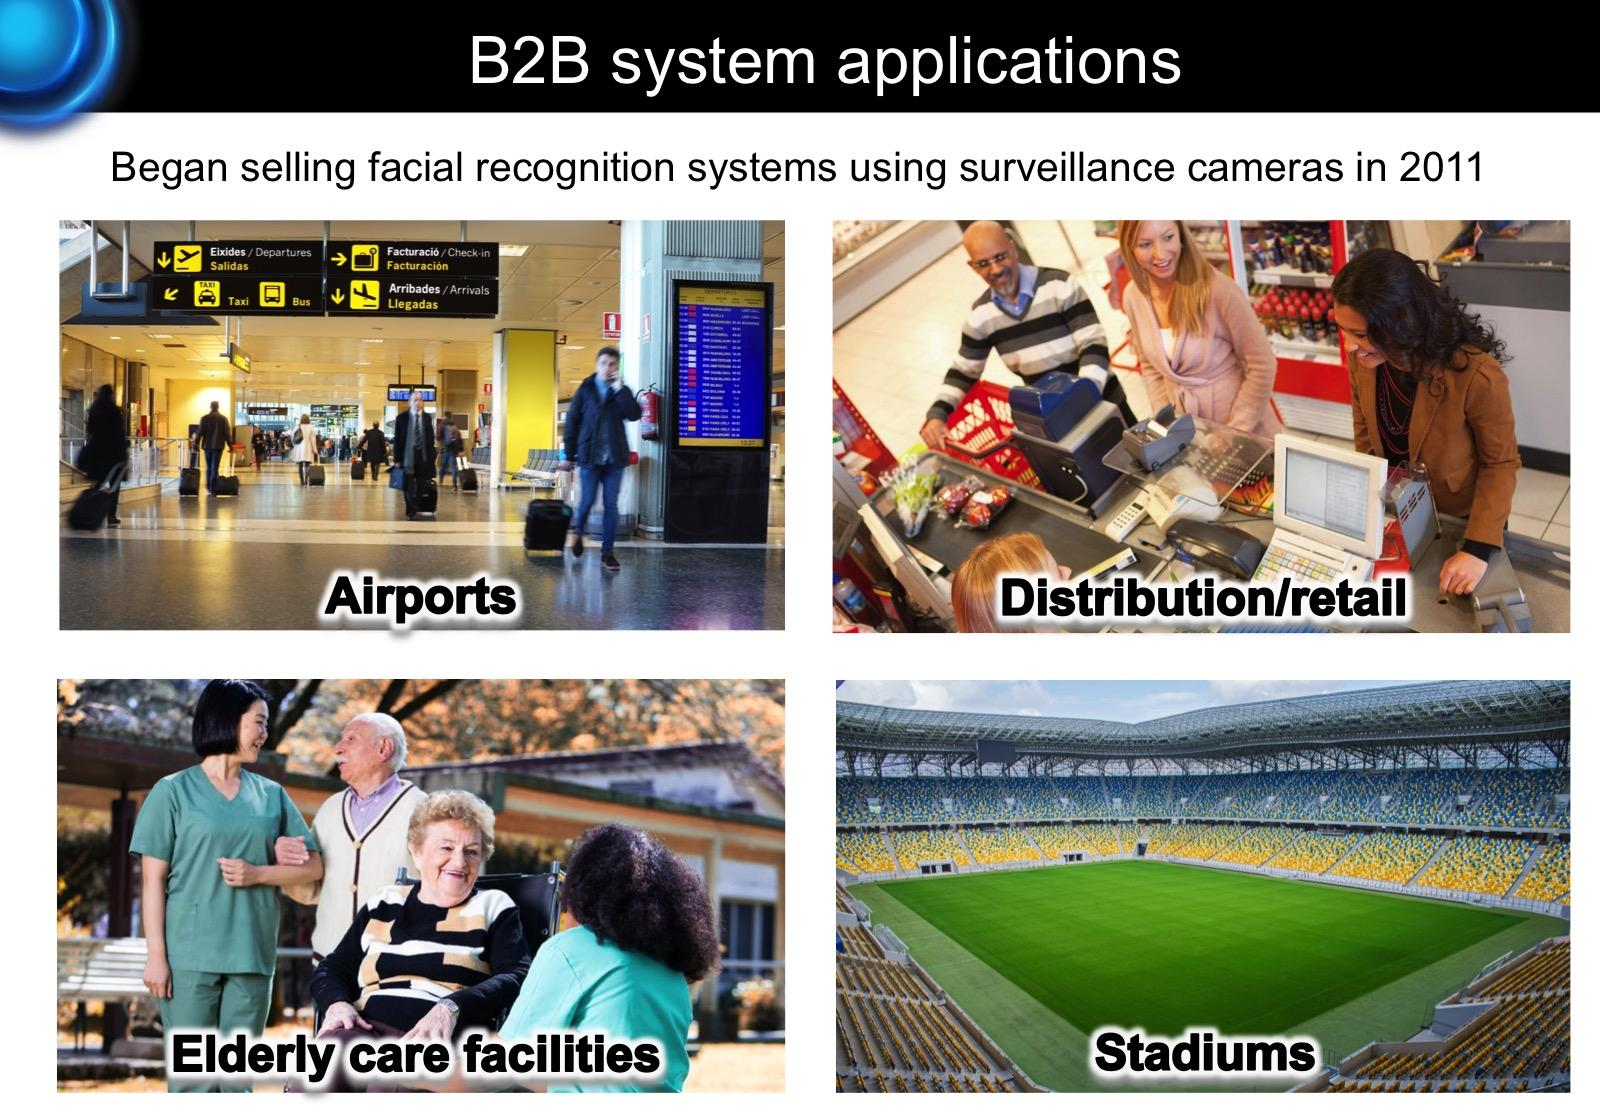 image: panasonic's facial recognition solution applications for B2B